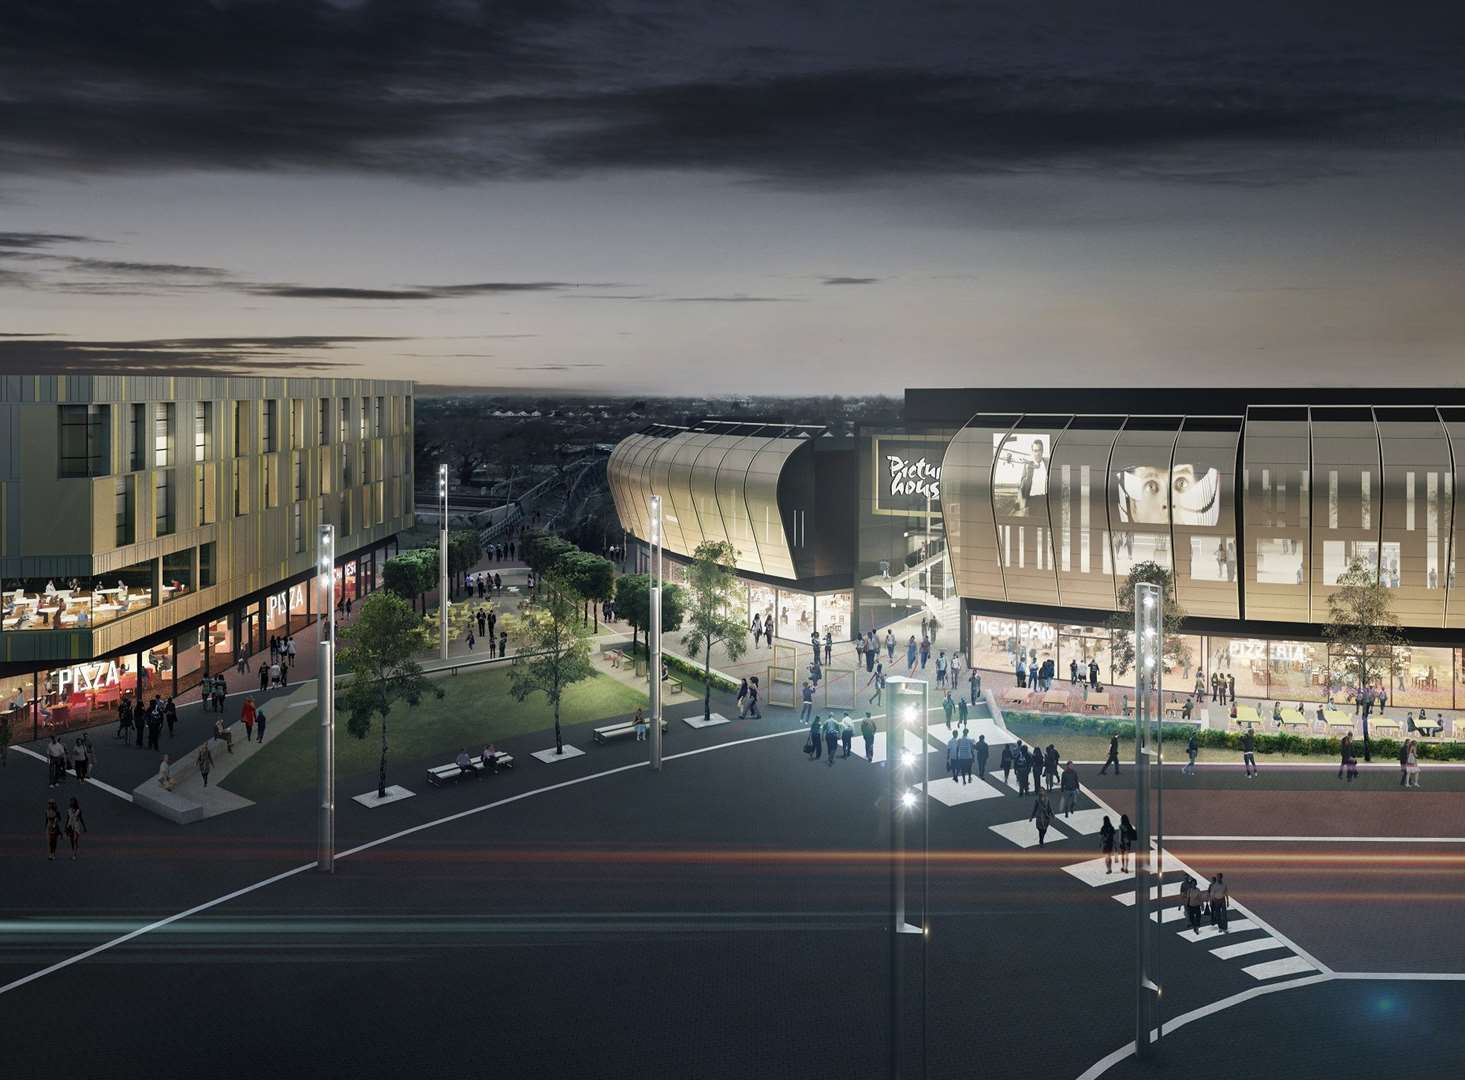 Work starts on town's £75 million revamp